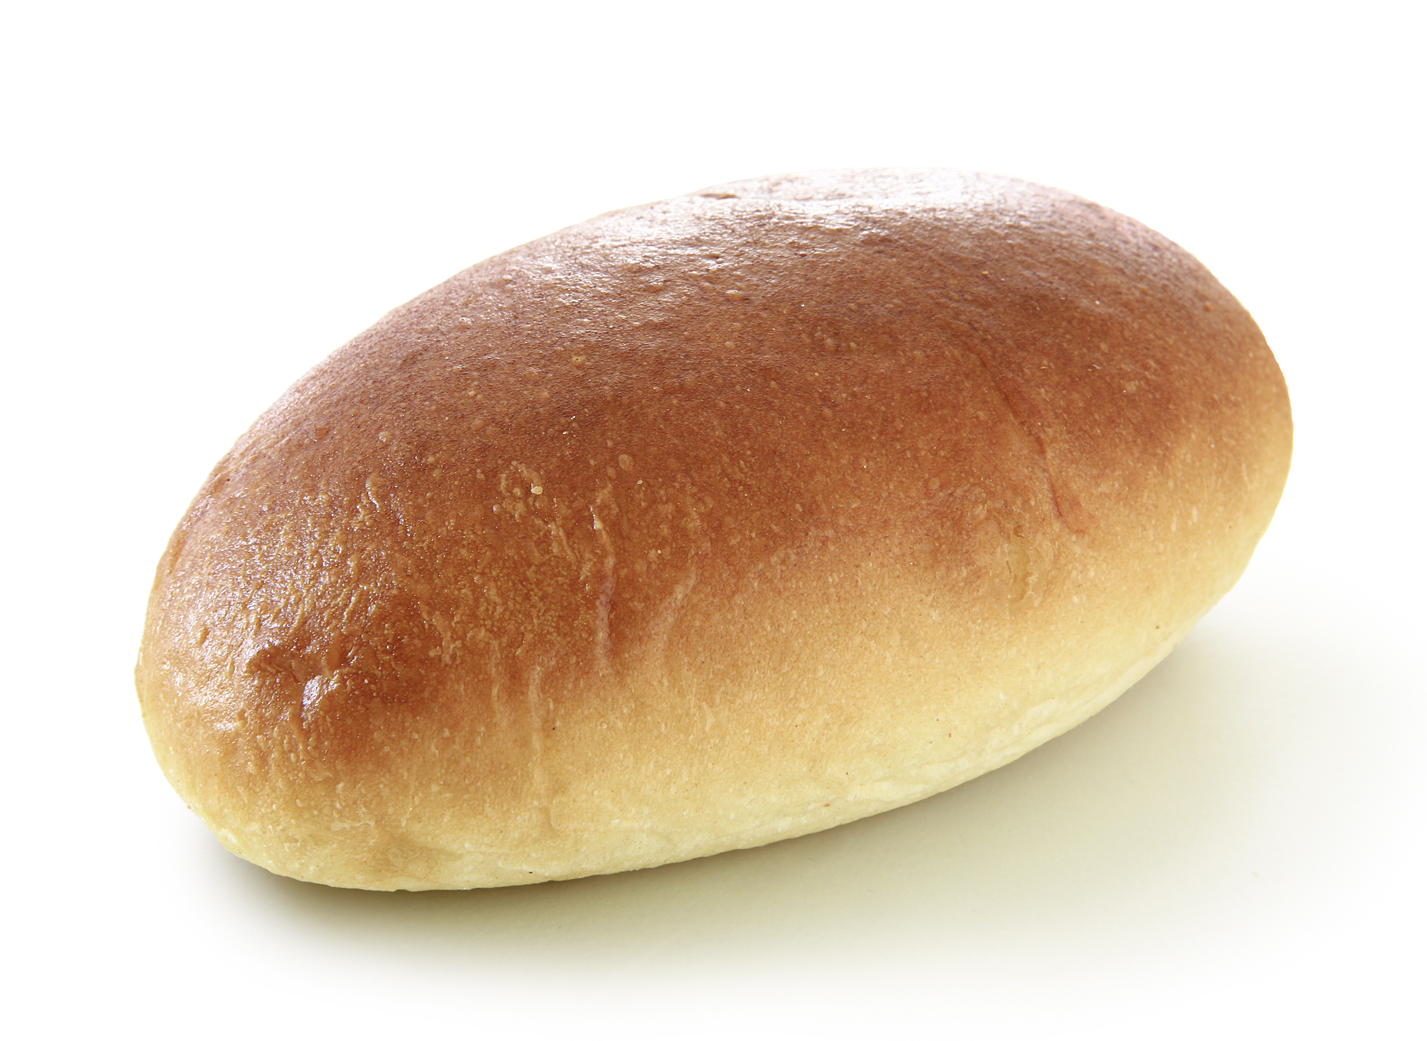 Sandwich Roll - Soft wheat roll/ thaw only